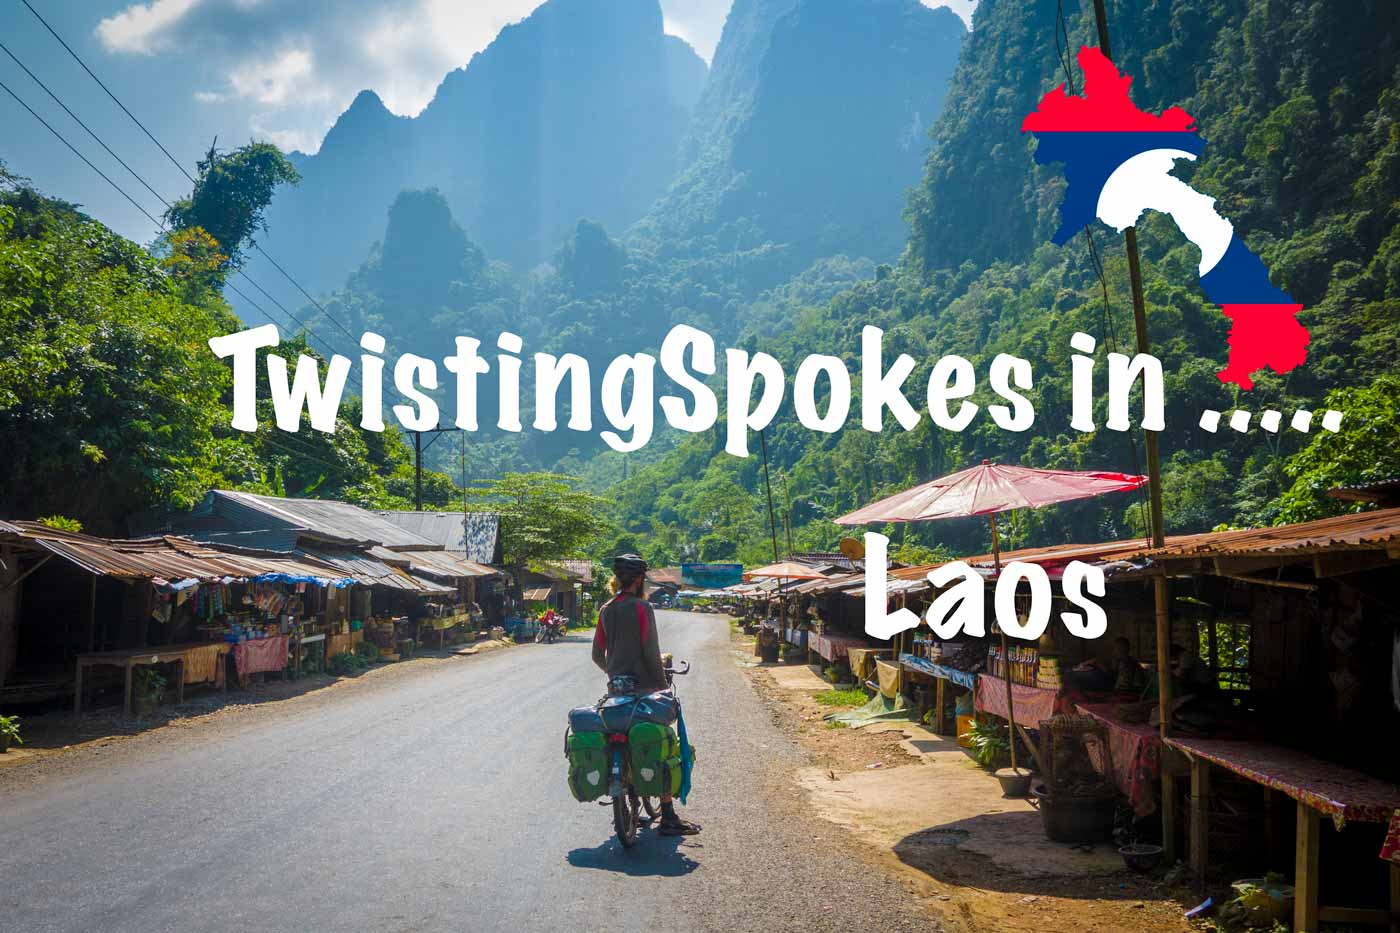 TwistingSpokes in Laos